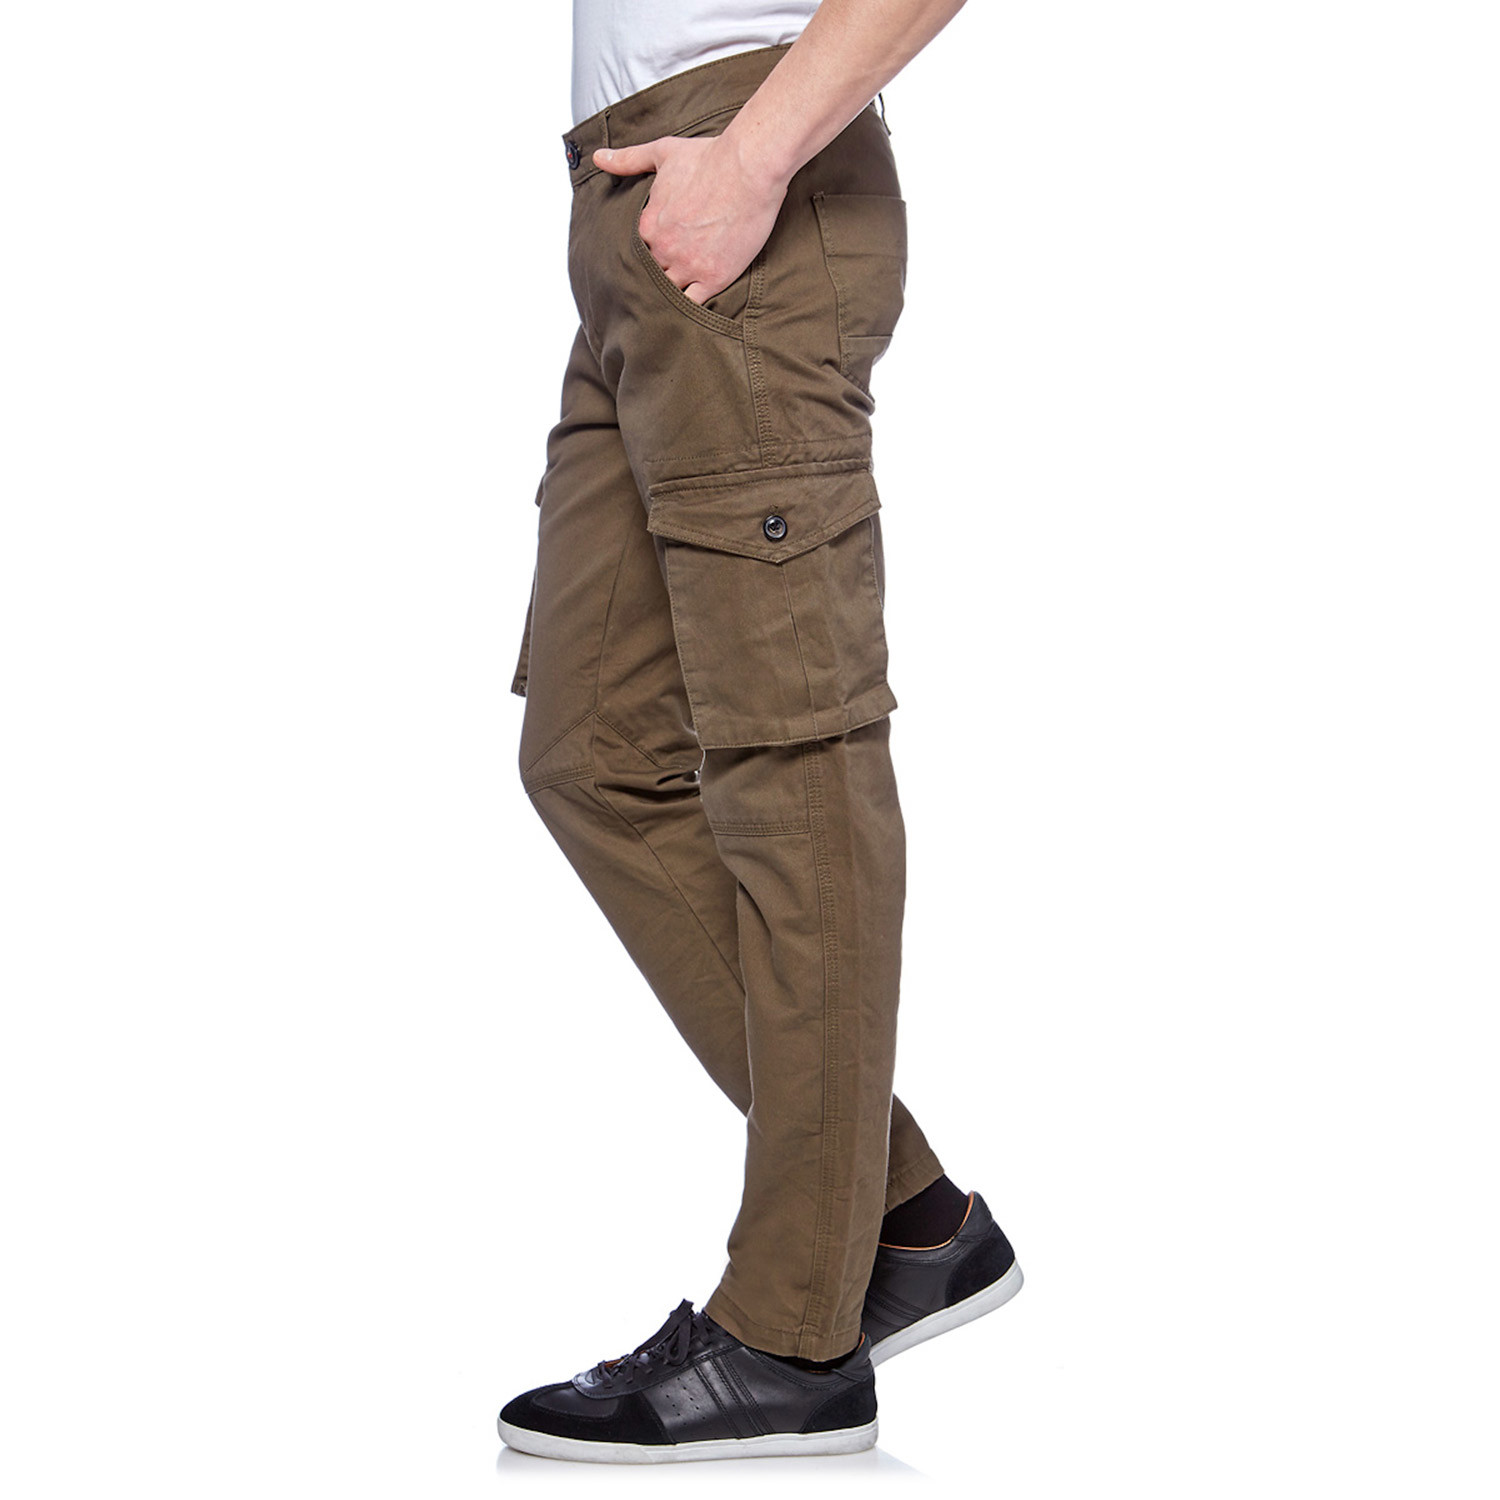 Exactly what I was hoping for--a good slim-fitting cargo pant without being too tight. The 36x32 size was perfect for me (6' 1/2